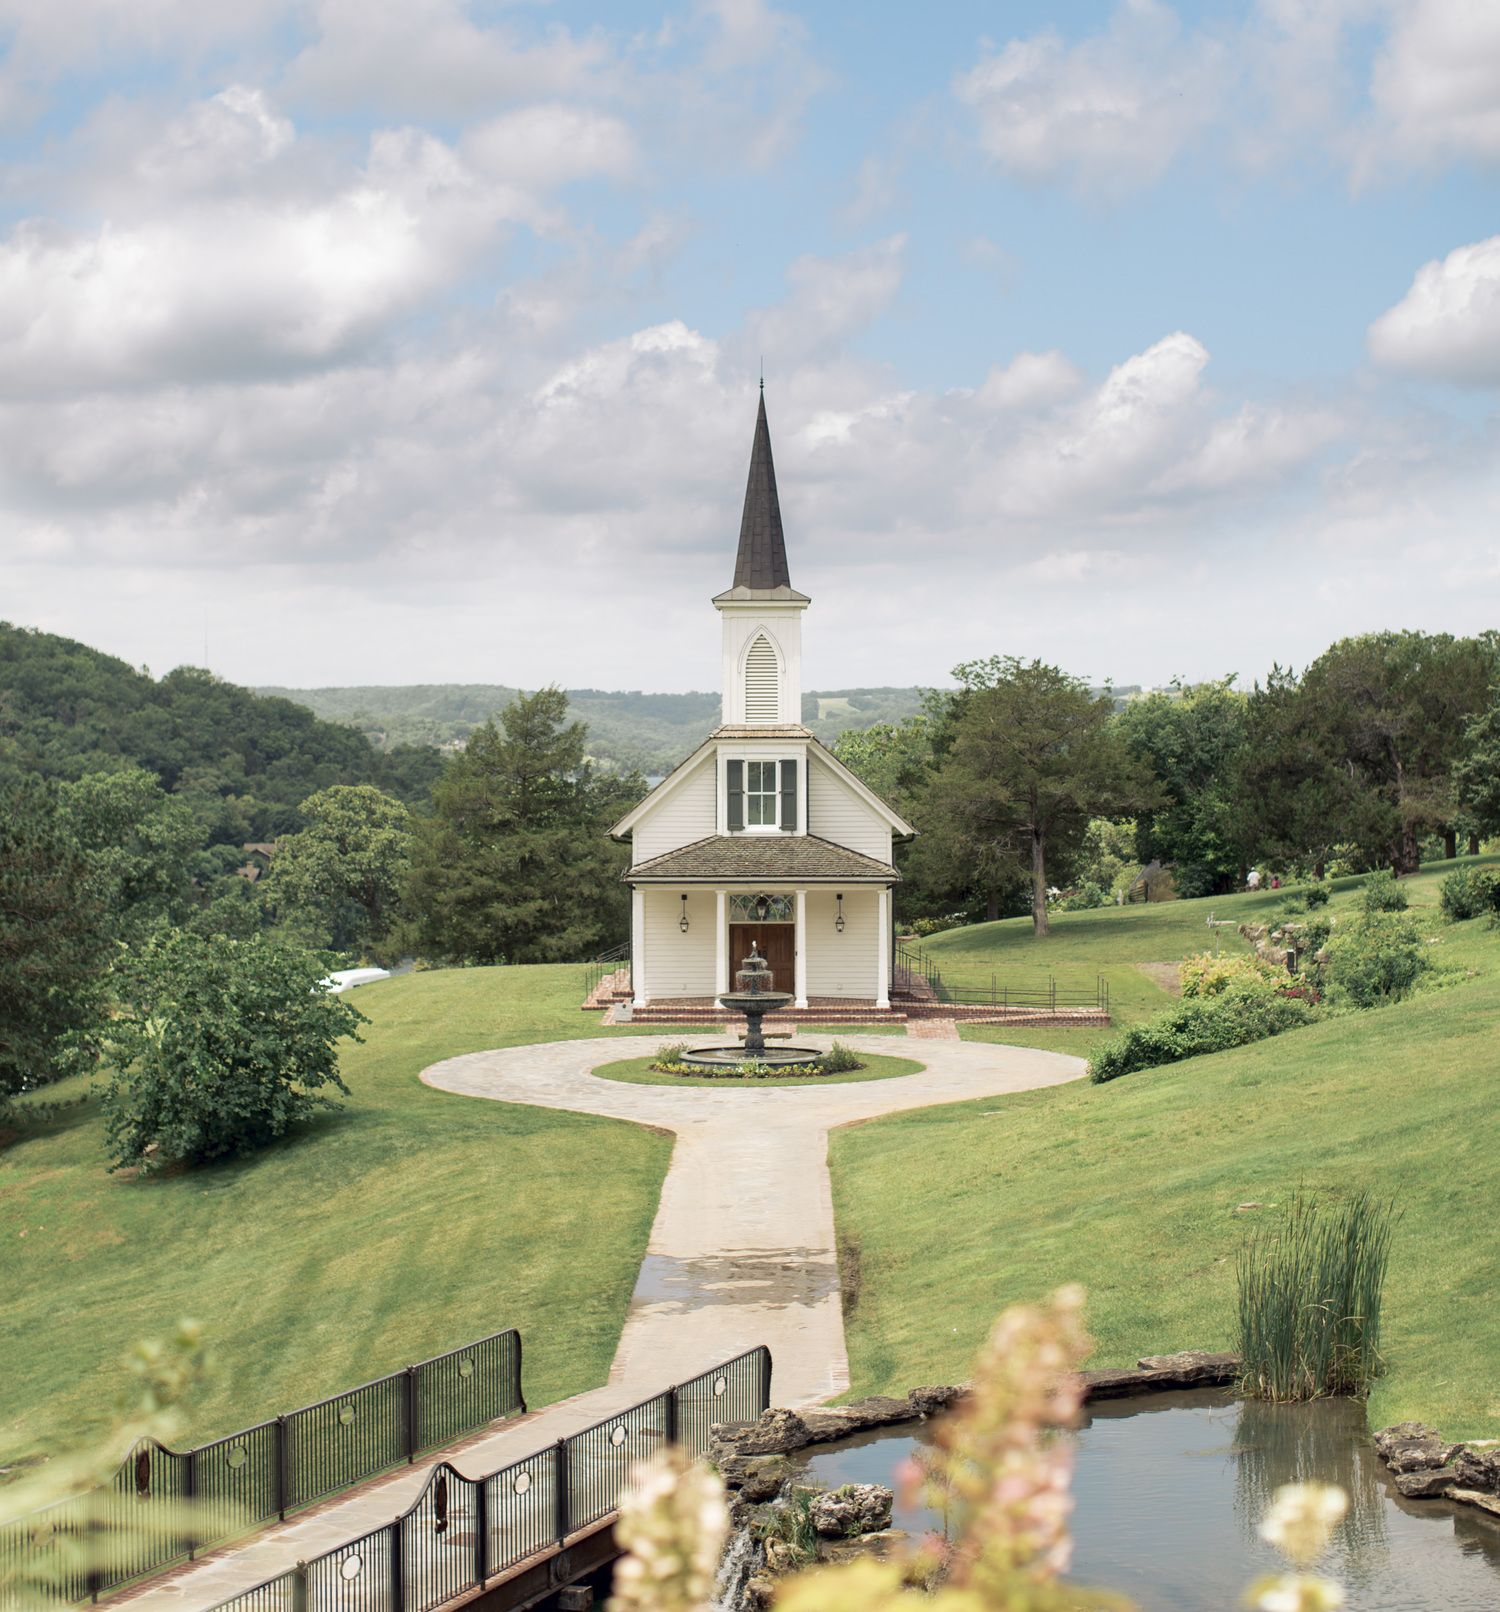 Sheri Holloway Photography S Sheri Holloway Photography Wedding Photographer Branson Mo Wedding Phot Country Church Church Architecture Old Country Churches